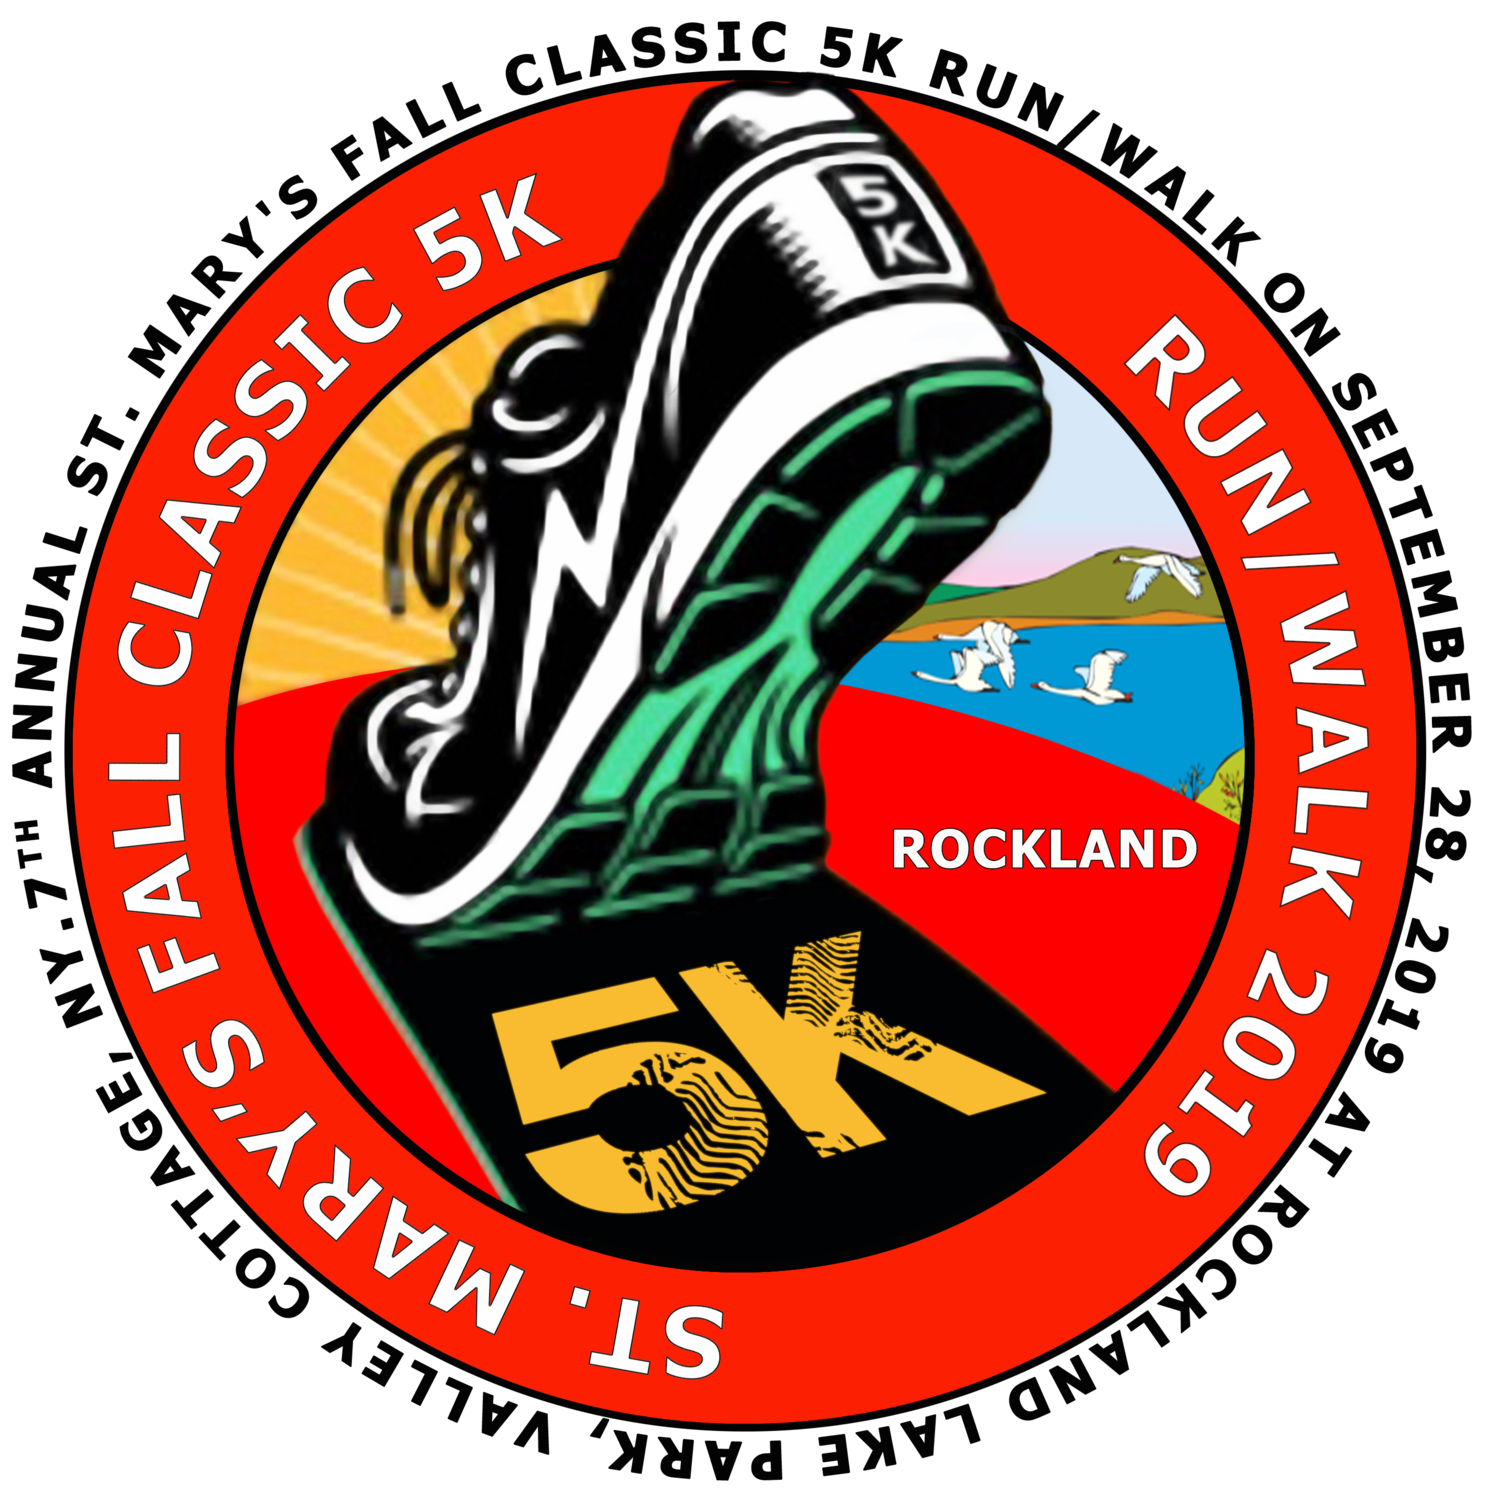 ST. MARY'S FALL CLASSIC 5K RUN/WALK